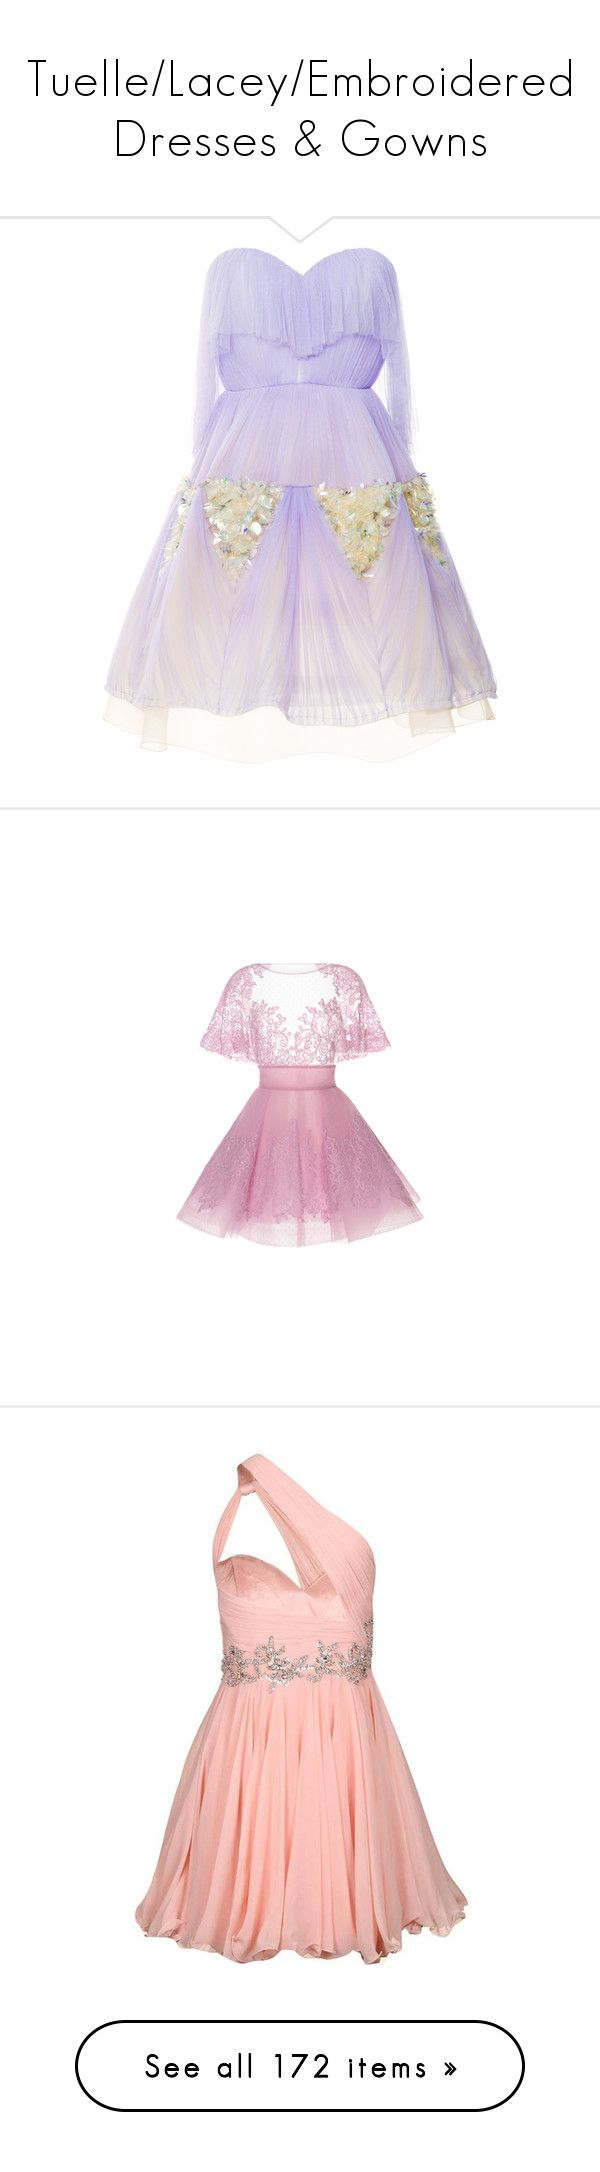 """Tuelle/Lacey/Embroidered Dresses & Gowns"" by kindergrrrl ❤ liked on Polyvore featuring dresses, vestidos, strapless dresses, special occasion dresses, purple cocktail dresses, see-through dresses, strapless cocktail dresses, full skirt cocktail dress, gown and a line mini dress"